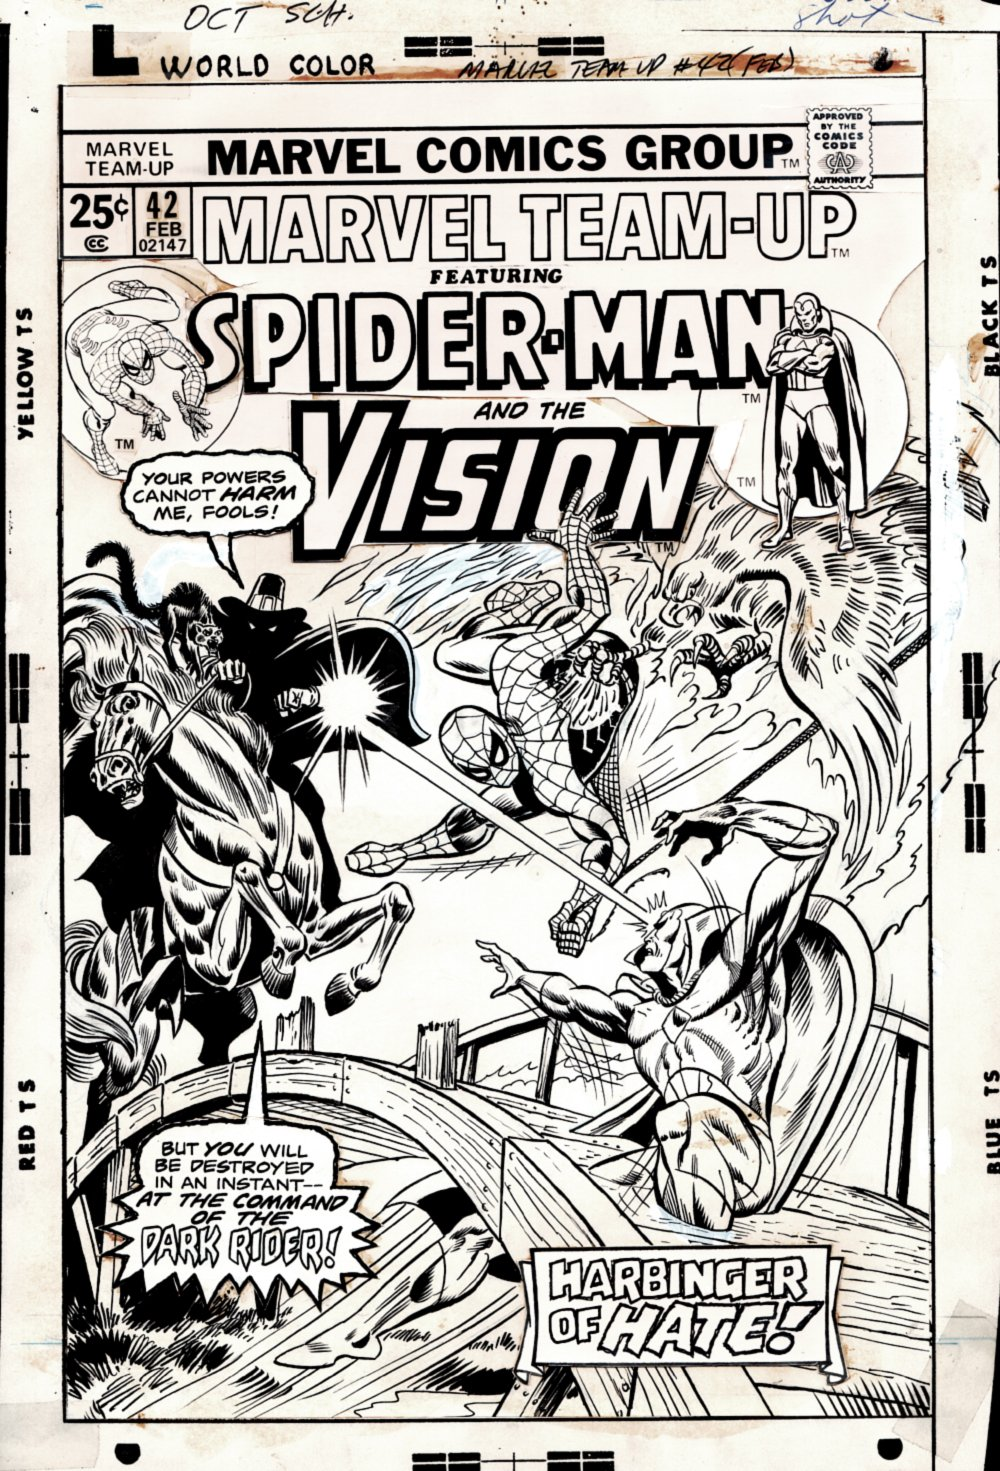 Marvel Team-Up #42 Cover Art (With Published Hand Colored Cover Guide! (Spider-Man & Vision Vs The Dark Rider) 1975